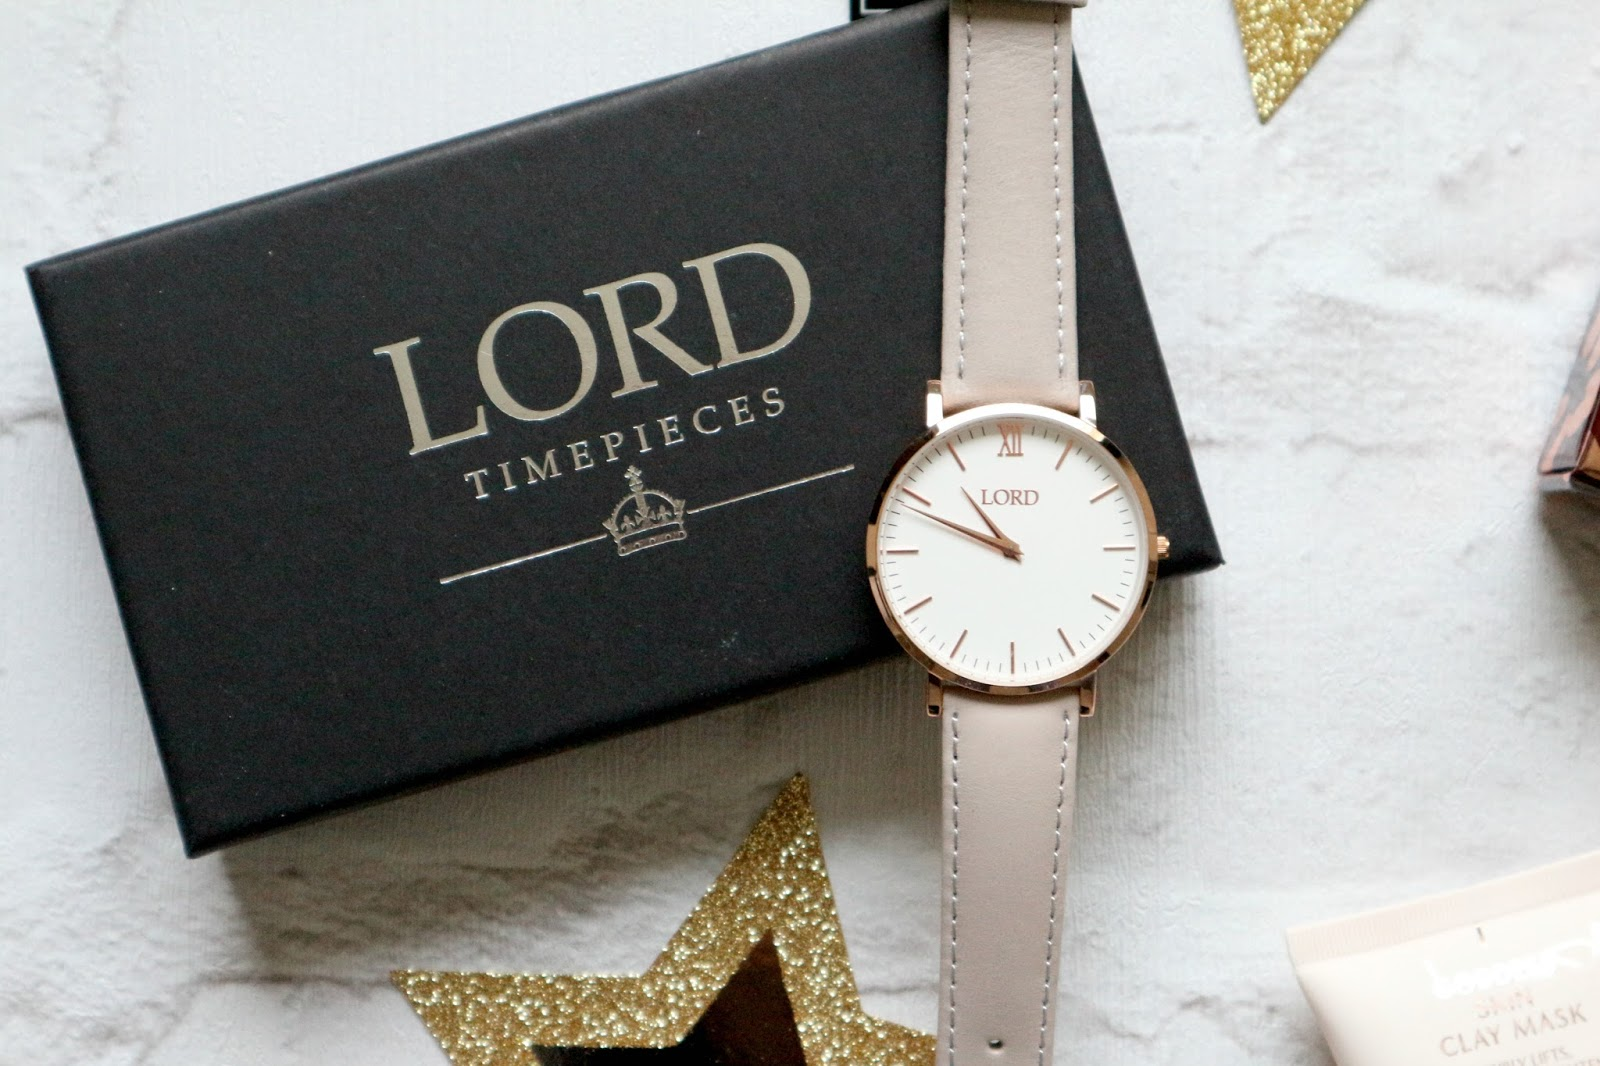 Lord Timepieces Watch Review